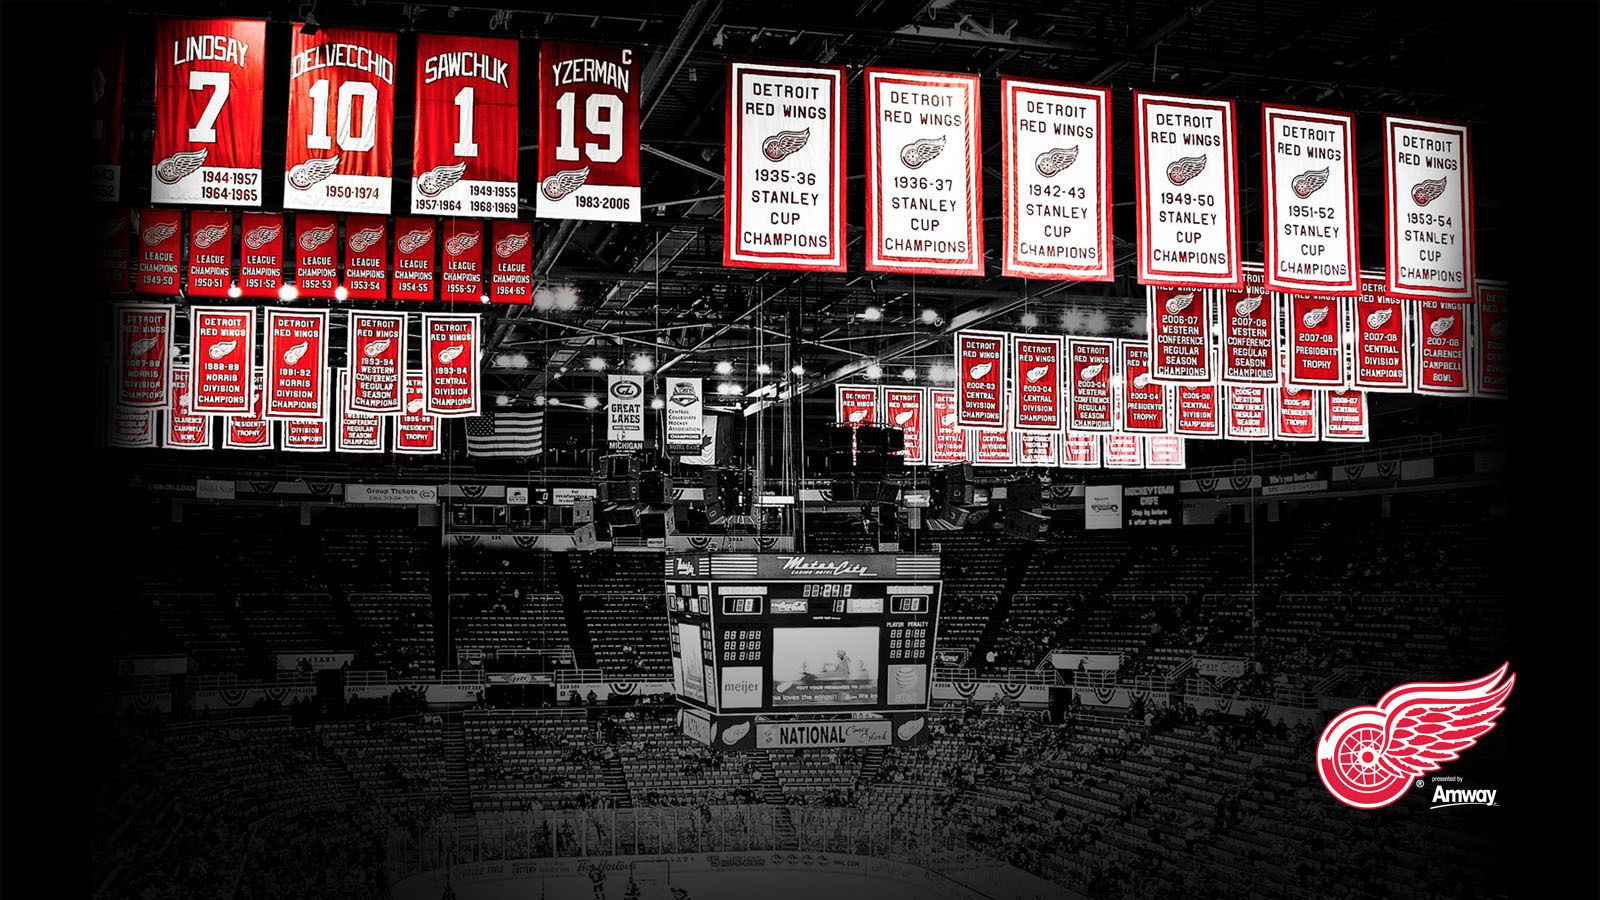 Tom Brady quitte les Pats  Detroit-red-wings-wallpaper-38